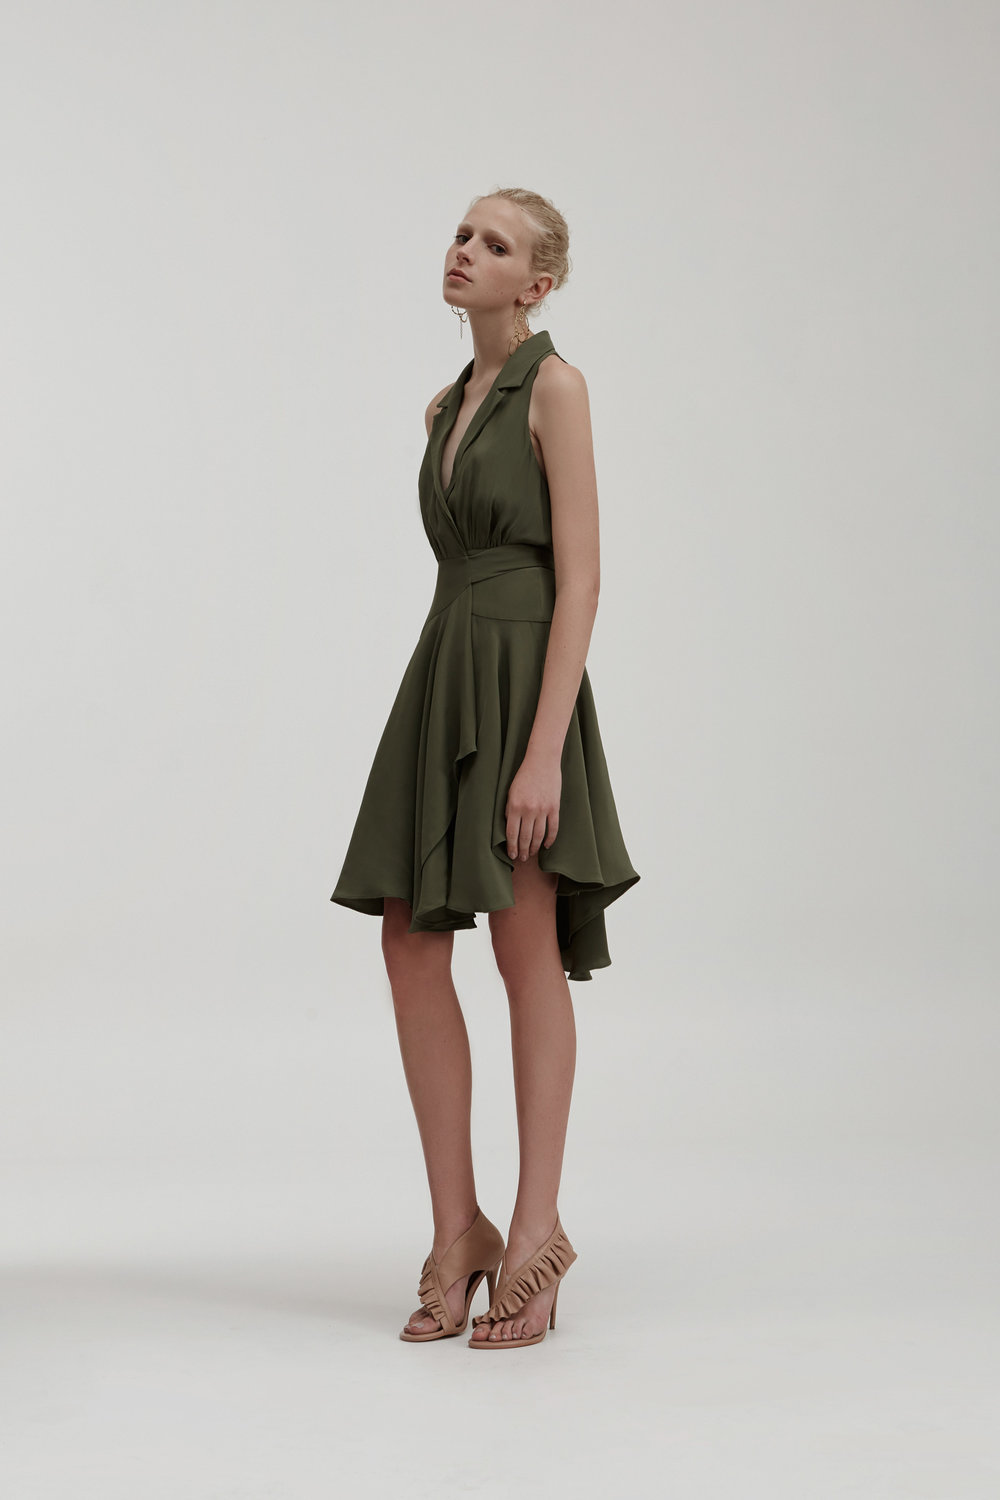 http://fashionbunker.com/caught-up-short-sleeve-dress?color=pine